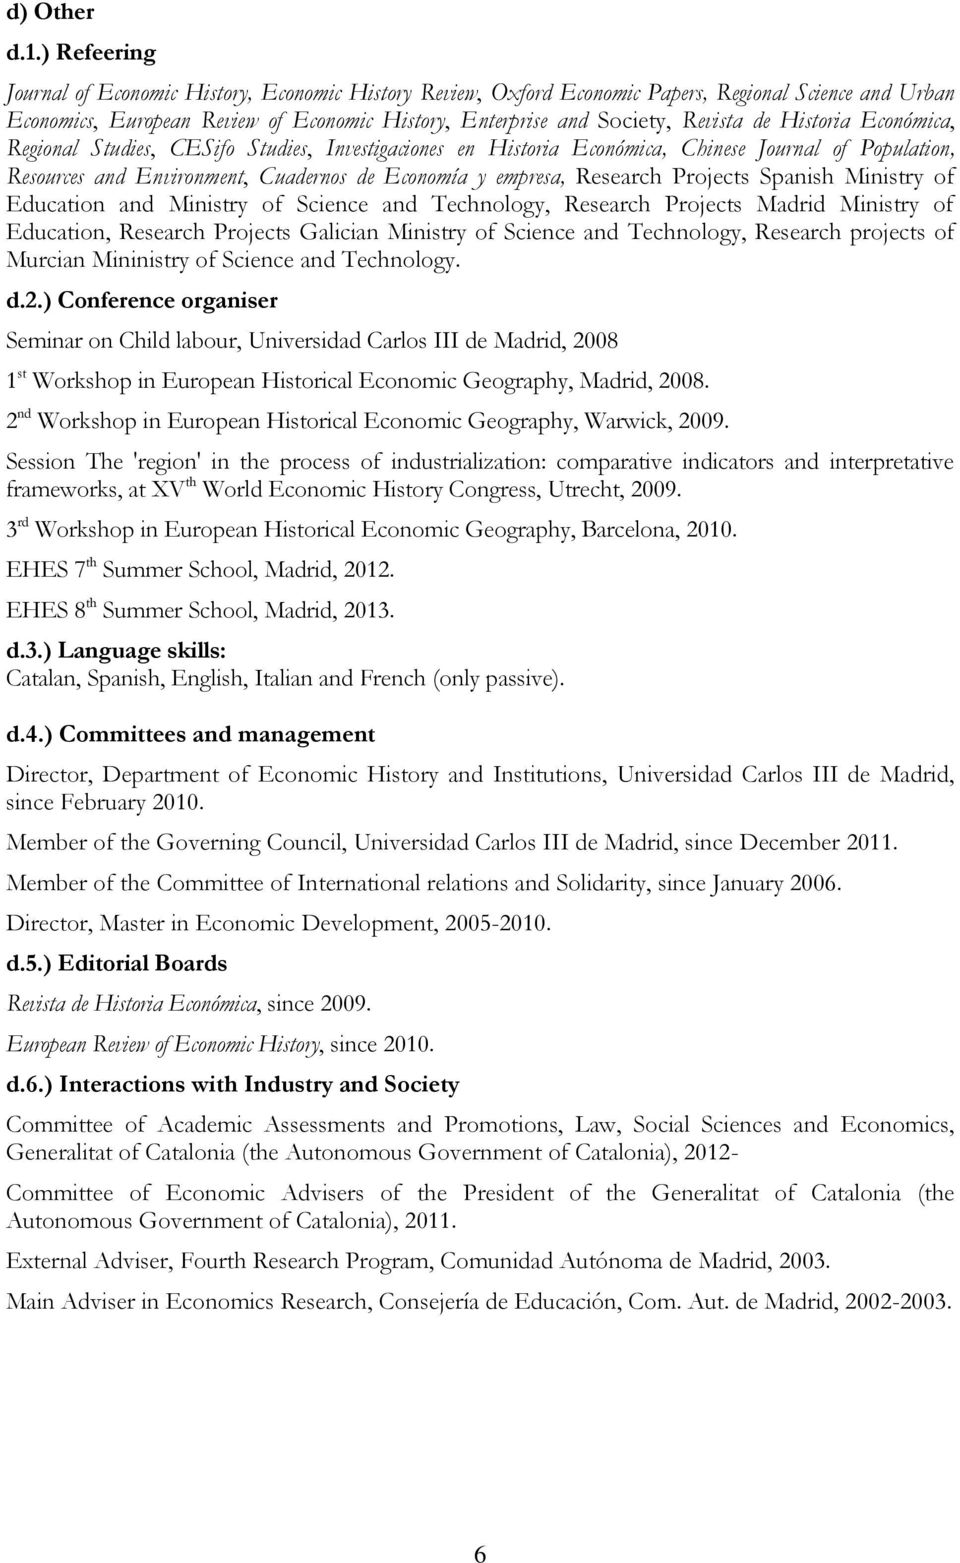 Historia Económica, Regional Studies, CESifo Studies, Investigaciones en Historia Económica, Chinese Journal of Population, Resources and Environment, Cuadernos de Economía y empresa, Research